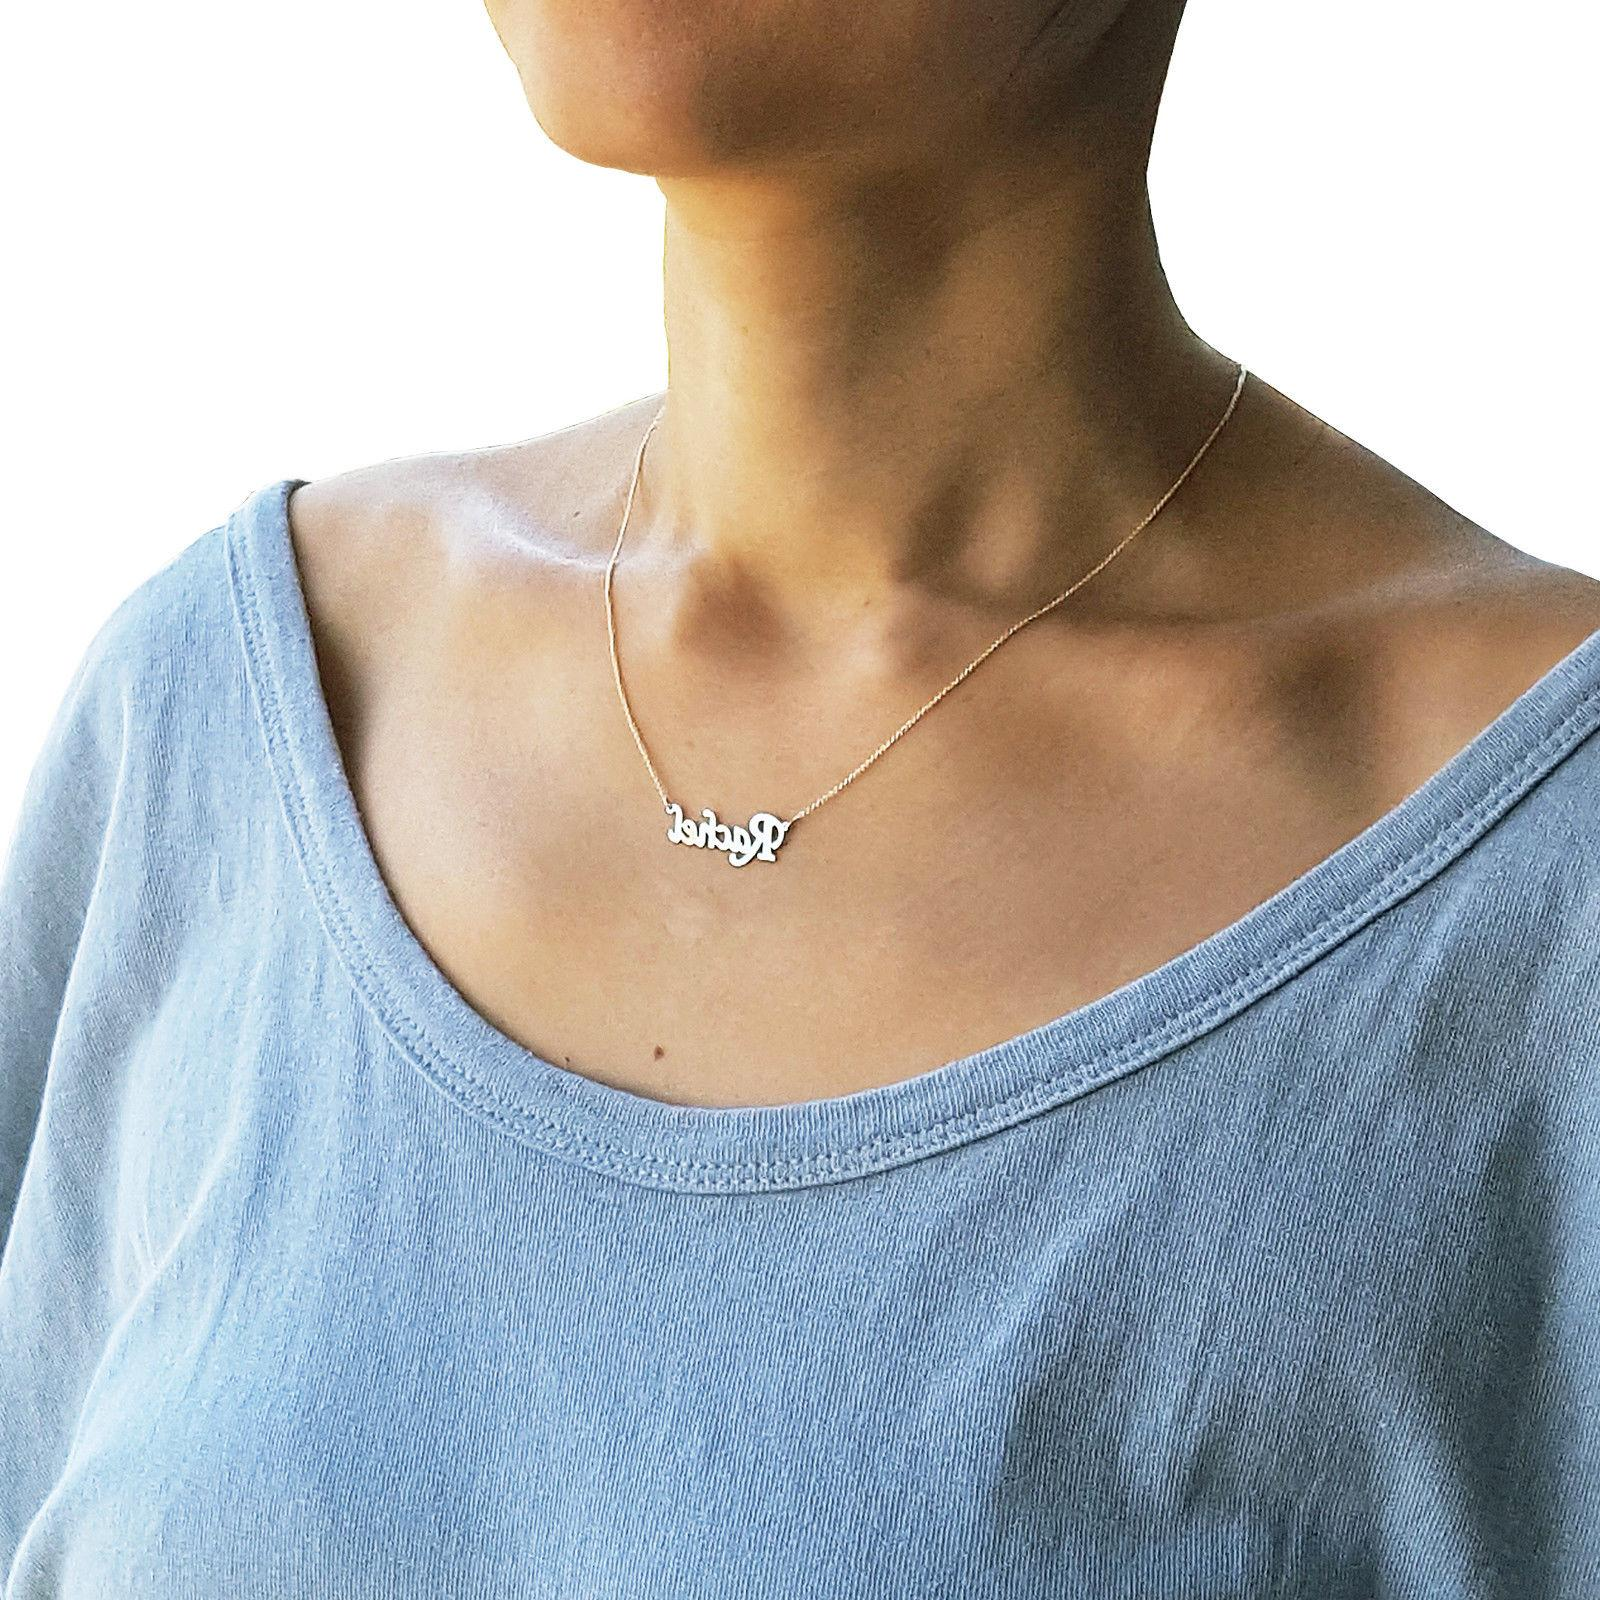 dainty 14k solid gold name necklace 1